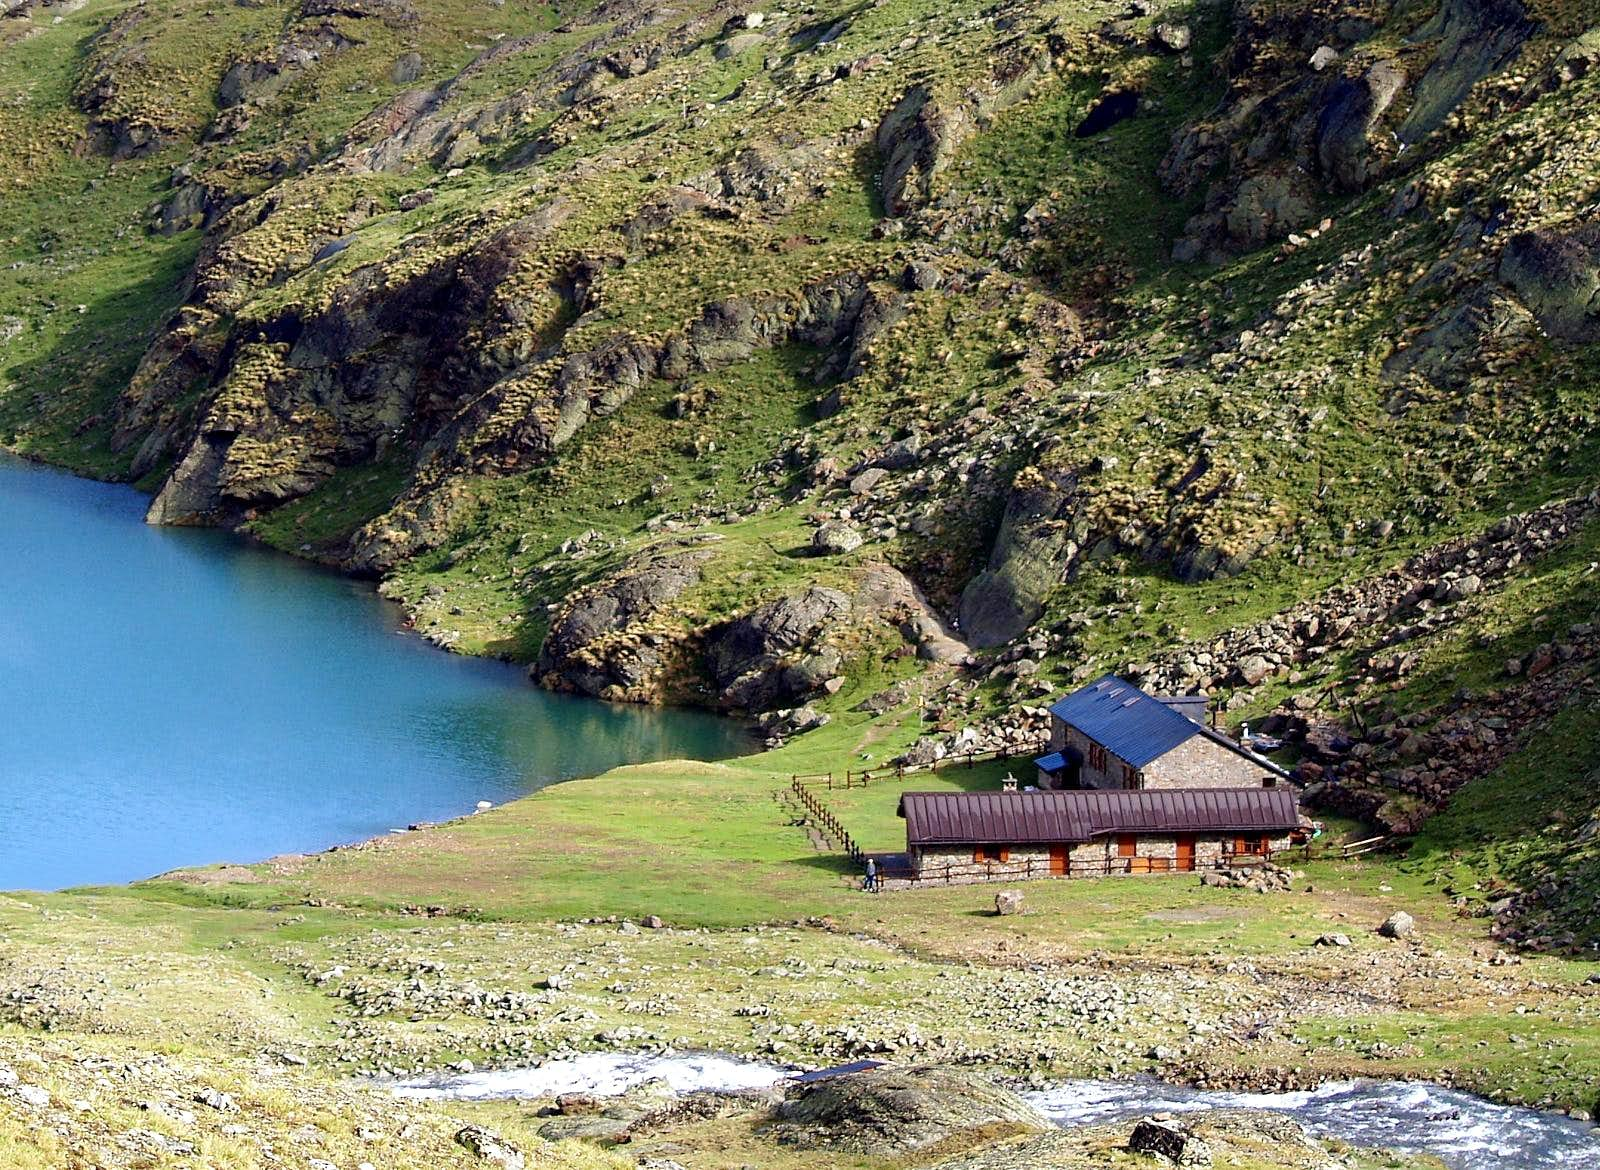 <font color=ff7000>⌂</font>Alpine REFUGES in the Aosta Valley &quot;Central Valley&quot;